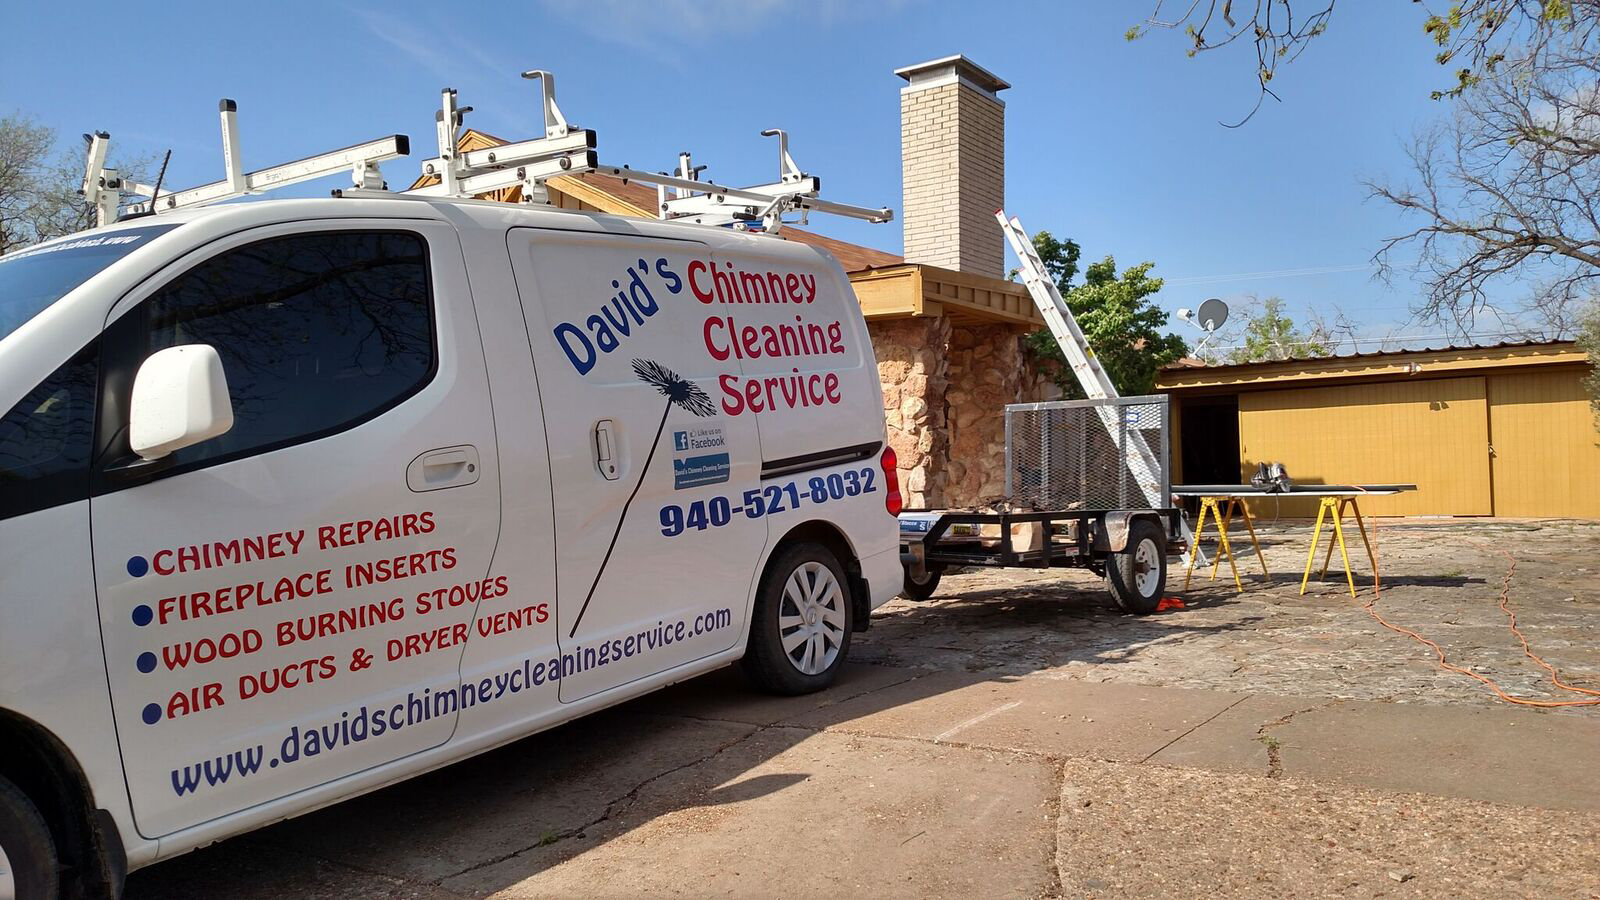 Services Davids Chimney Cleaning Service Llc